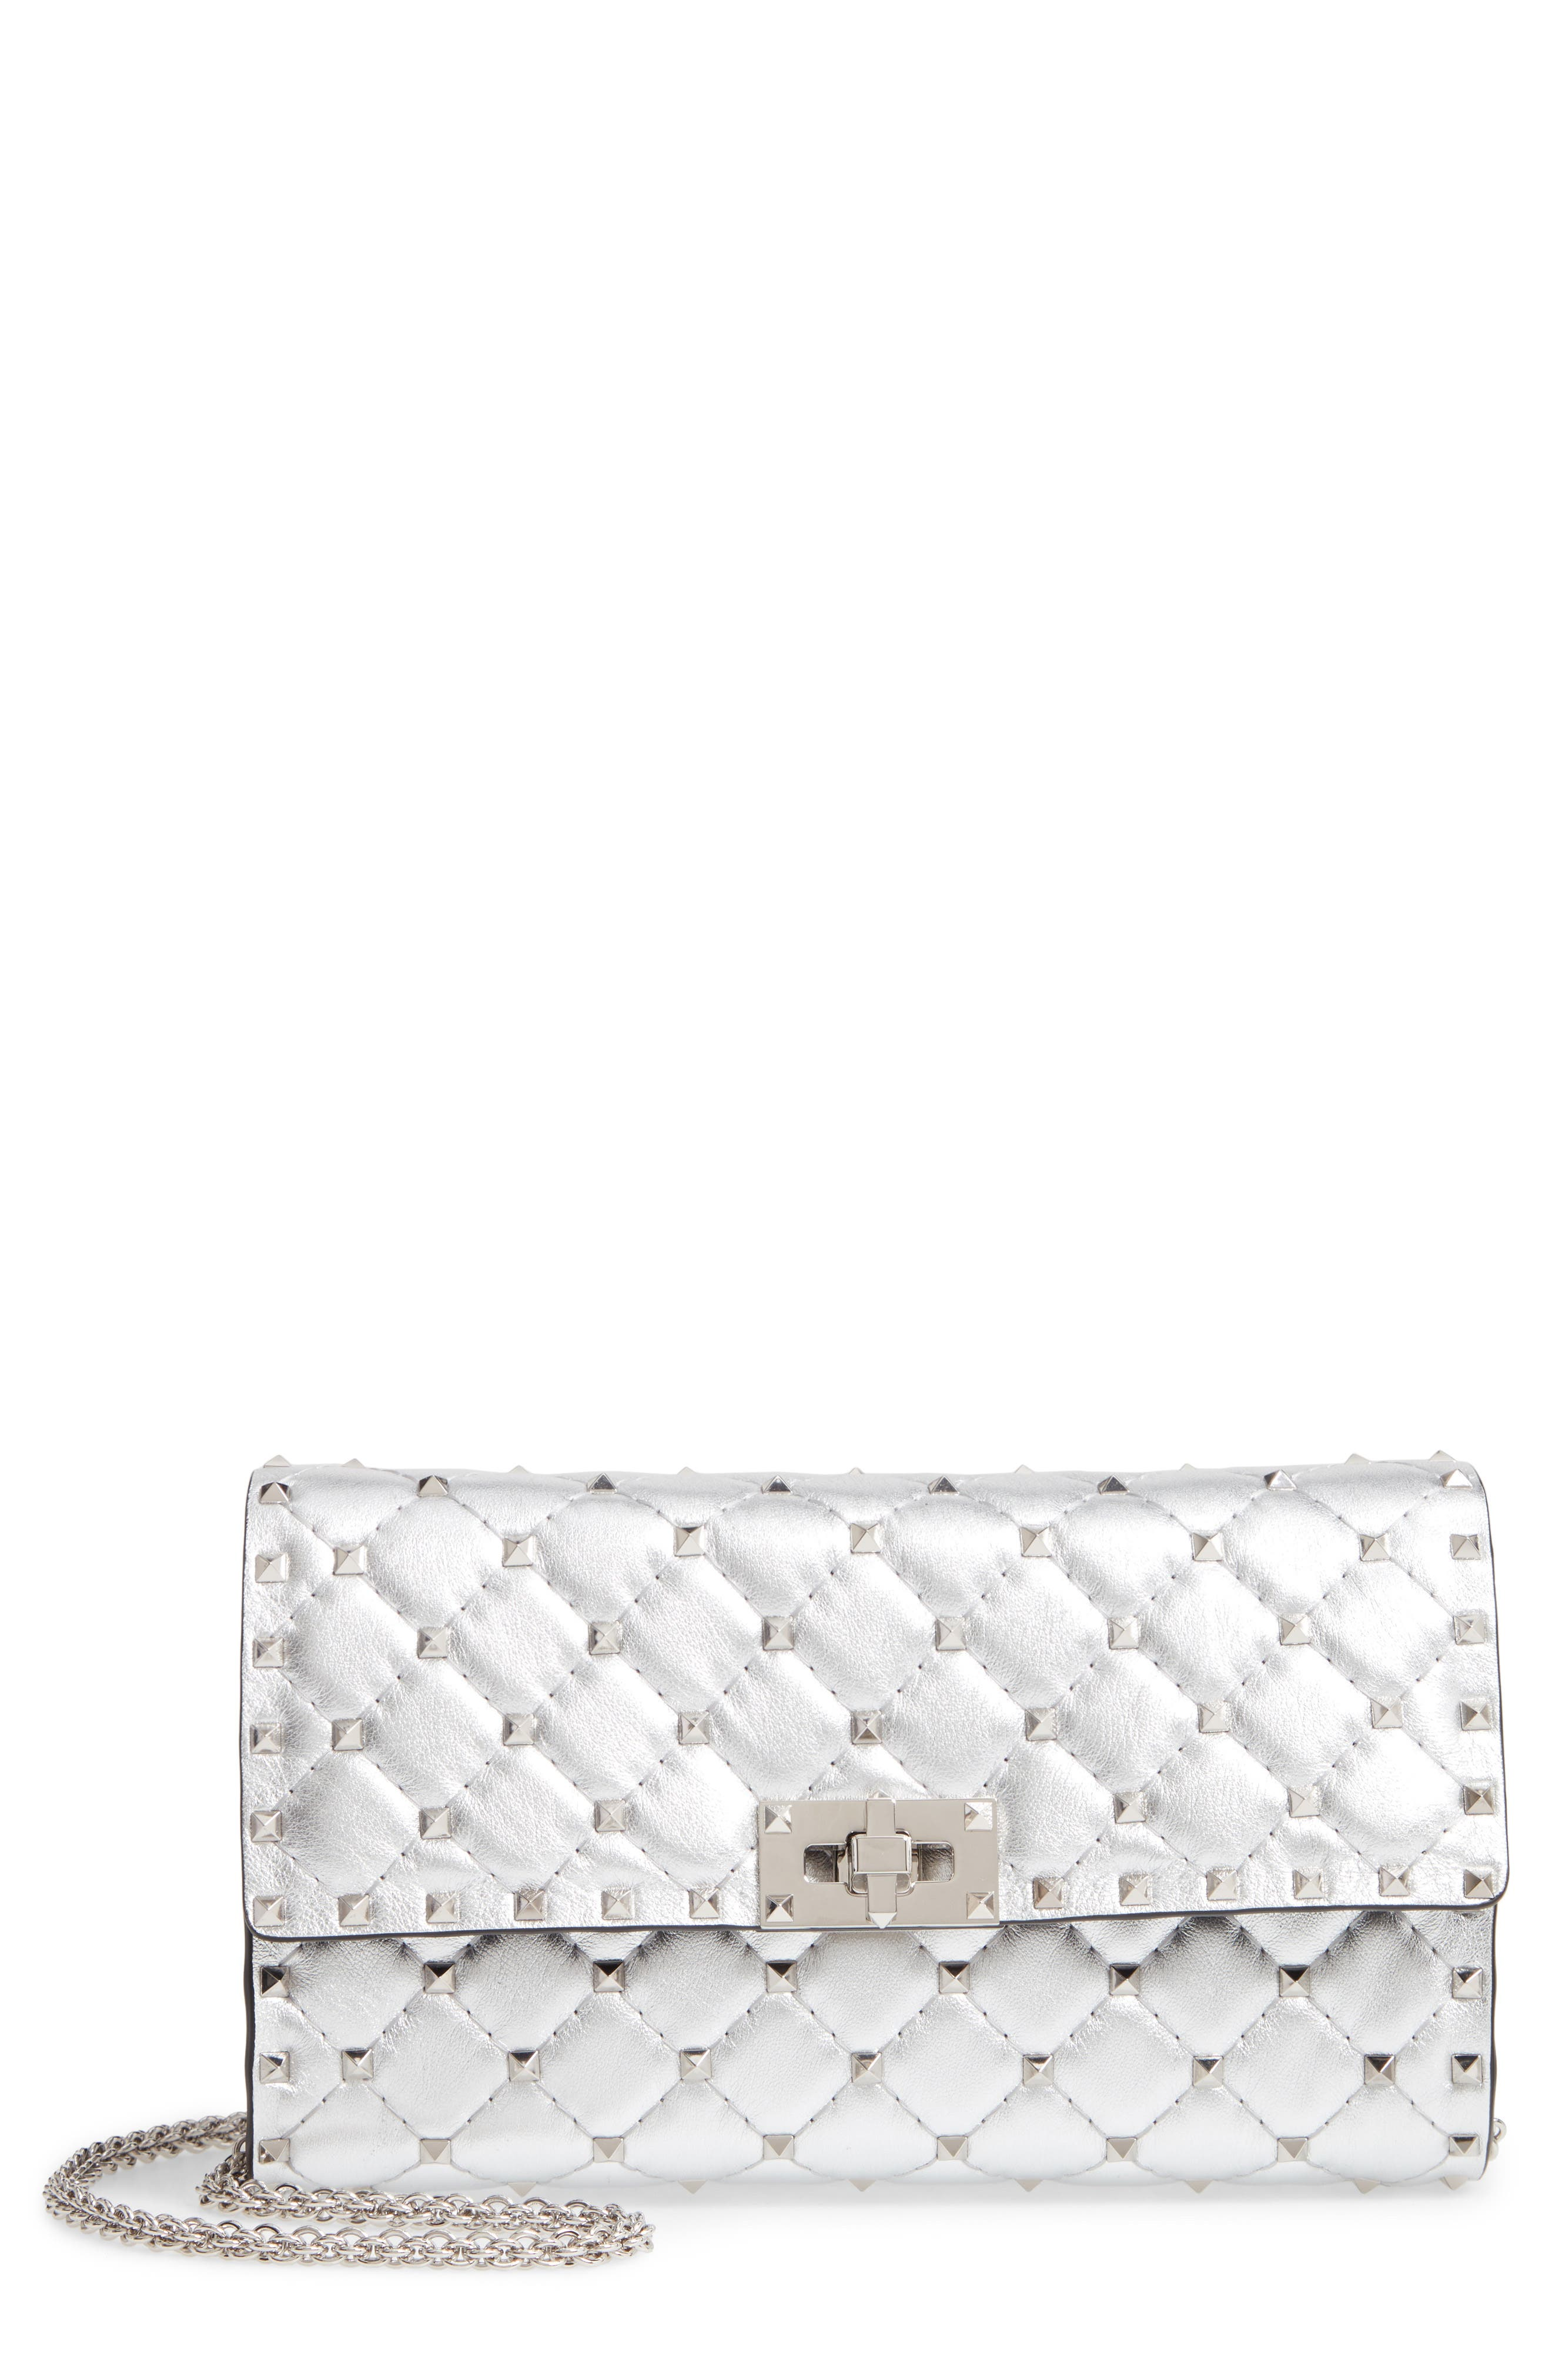 Rockstud Metallic Leather Clutch,                             Main thumbnail 1, color,                             SILVER